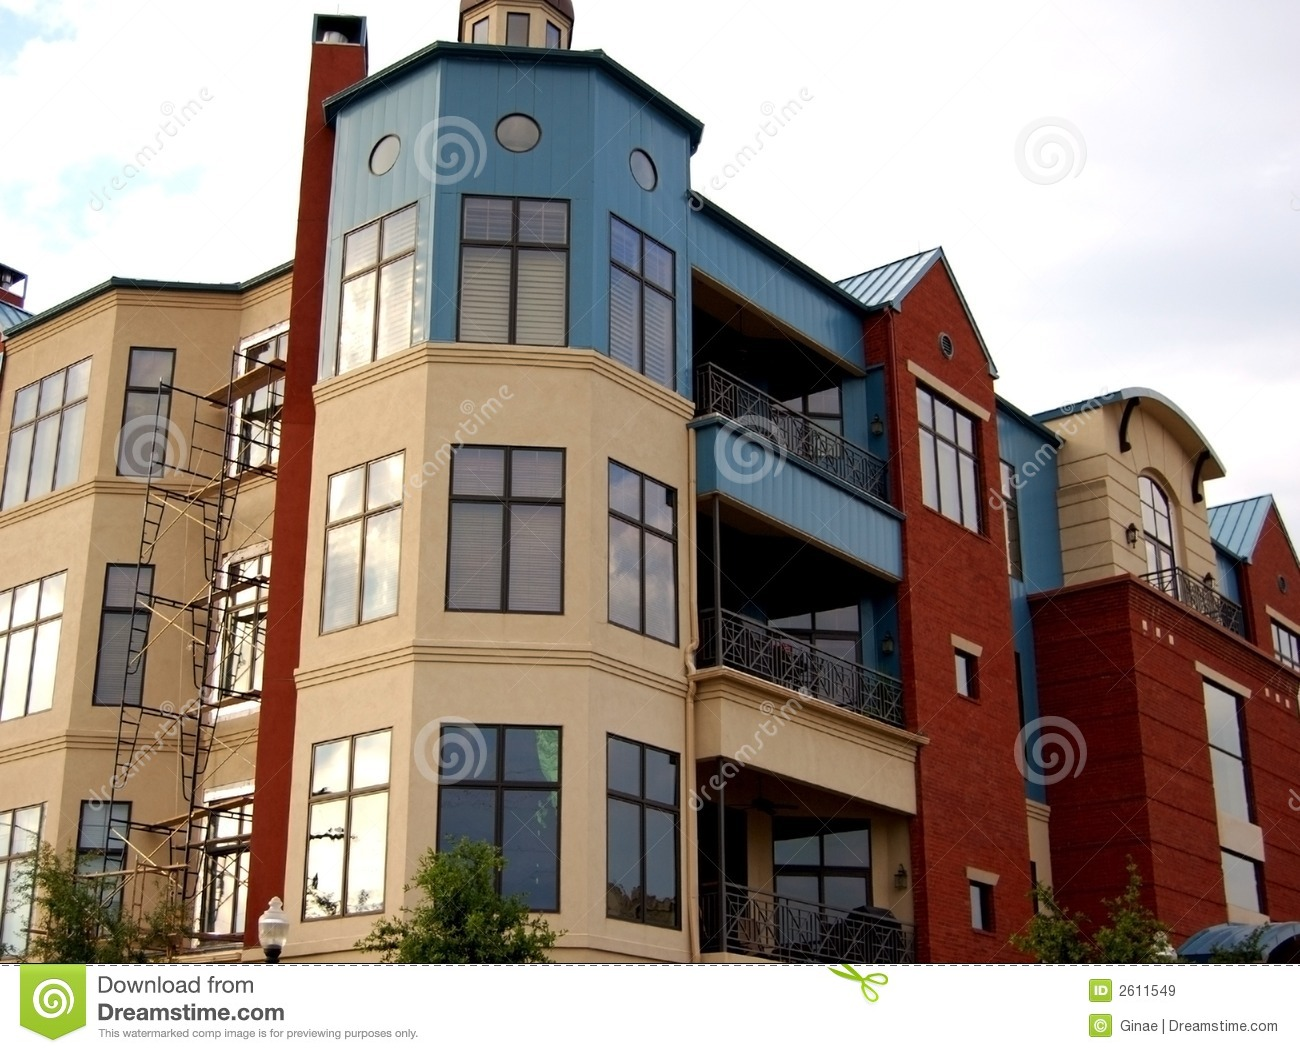 Apartment Complex modern apartment complex royalty free stock images - image: 2611549